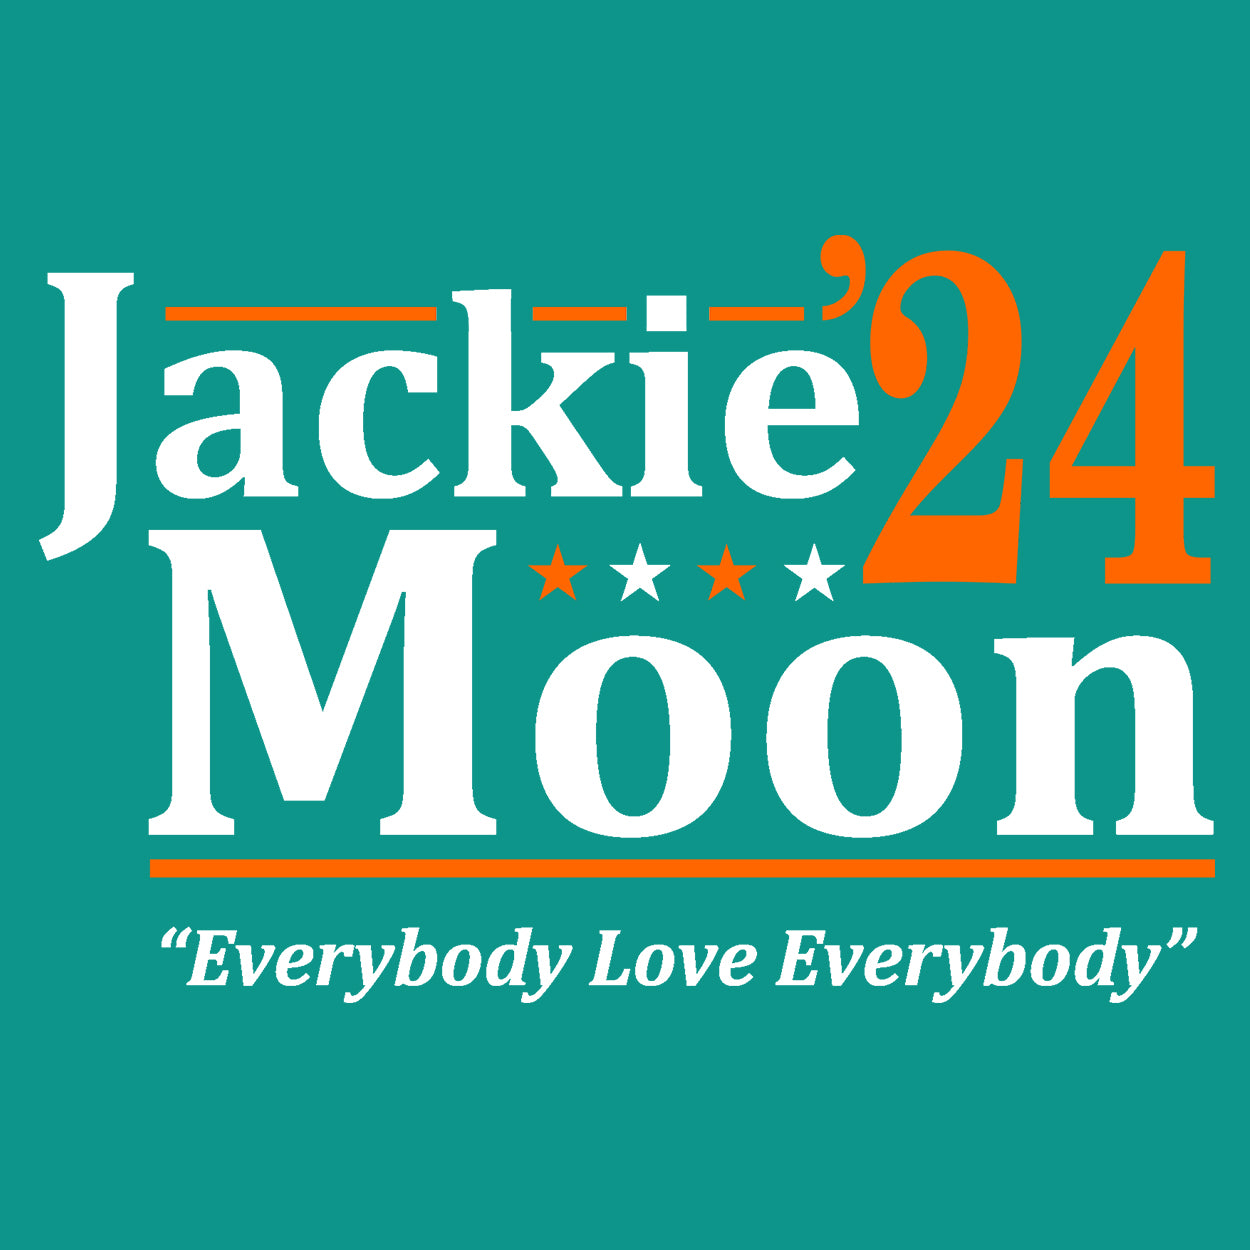 Jackie Moon 2020 Election - DonkeyTees